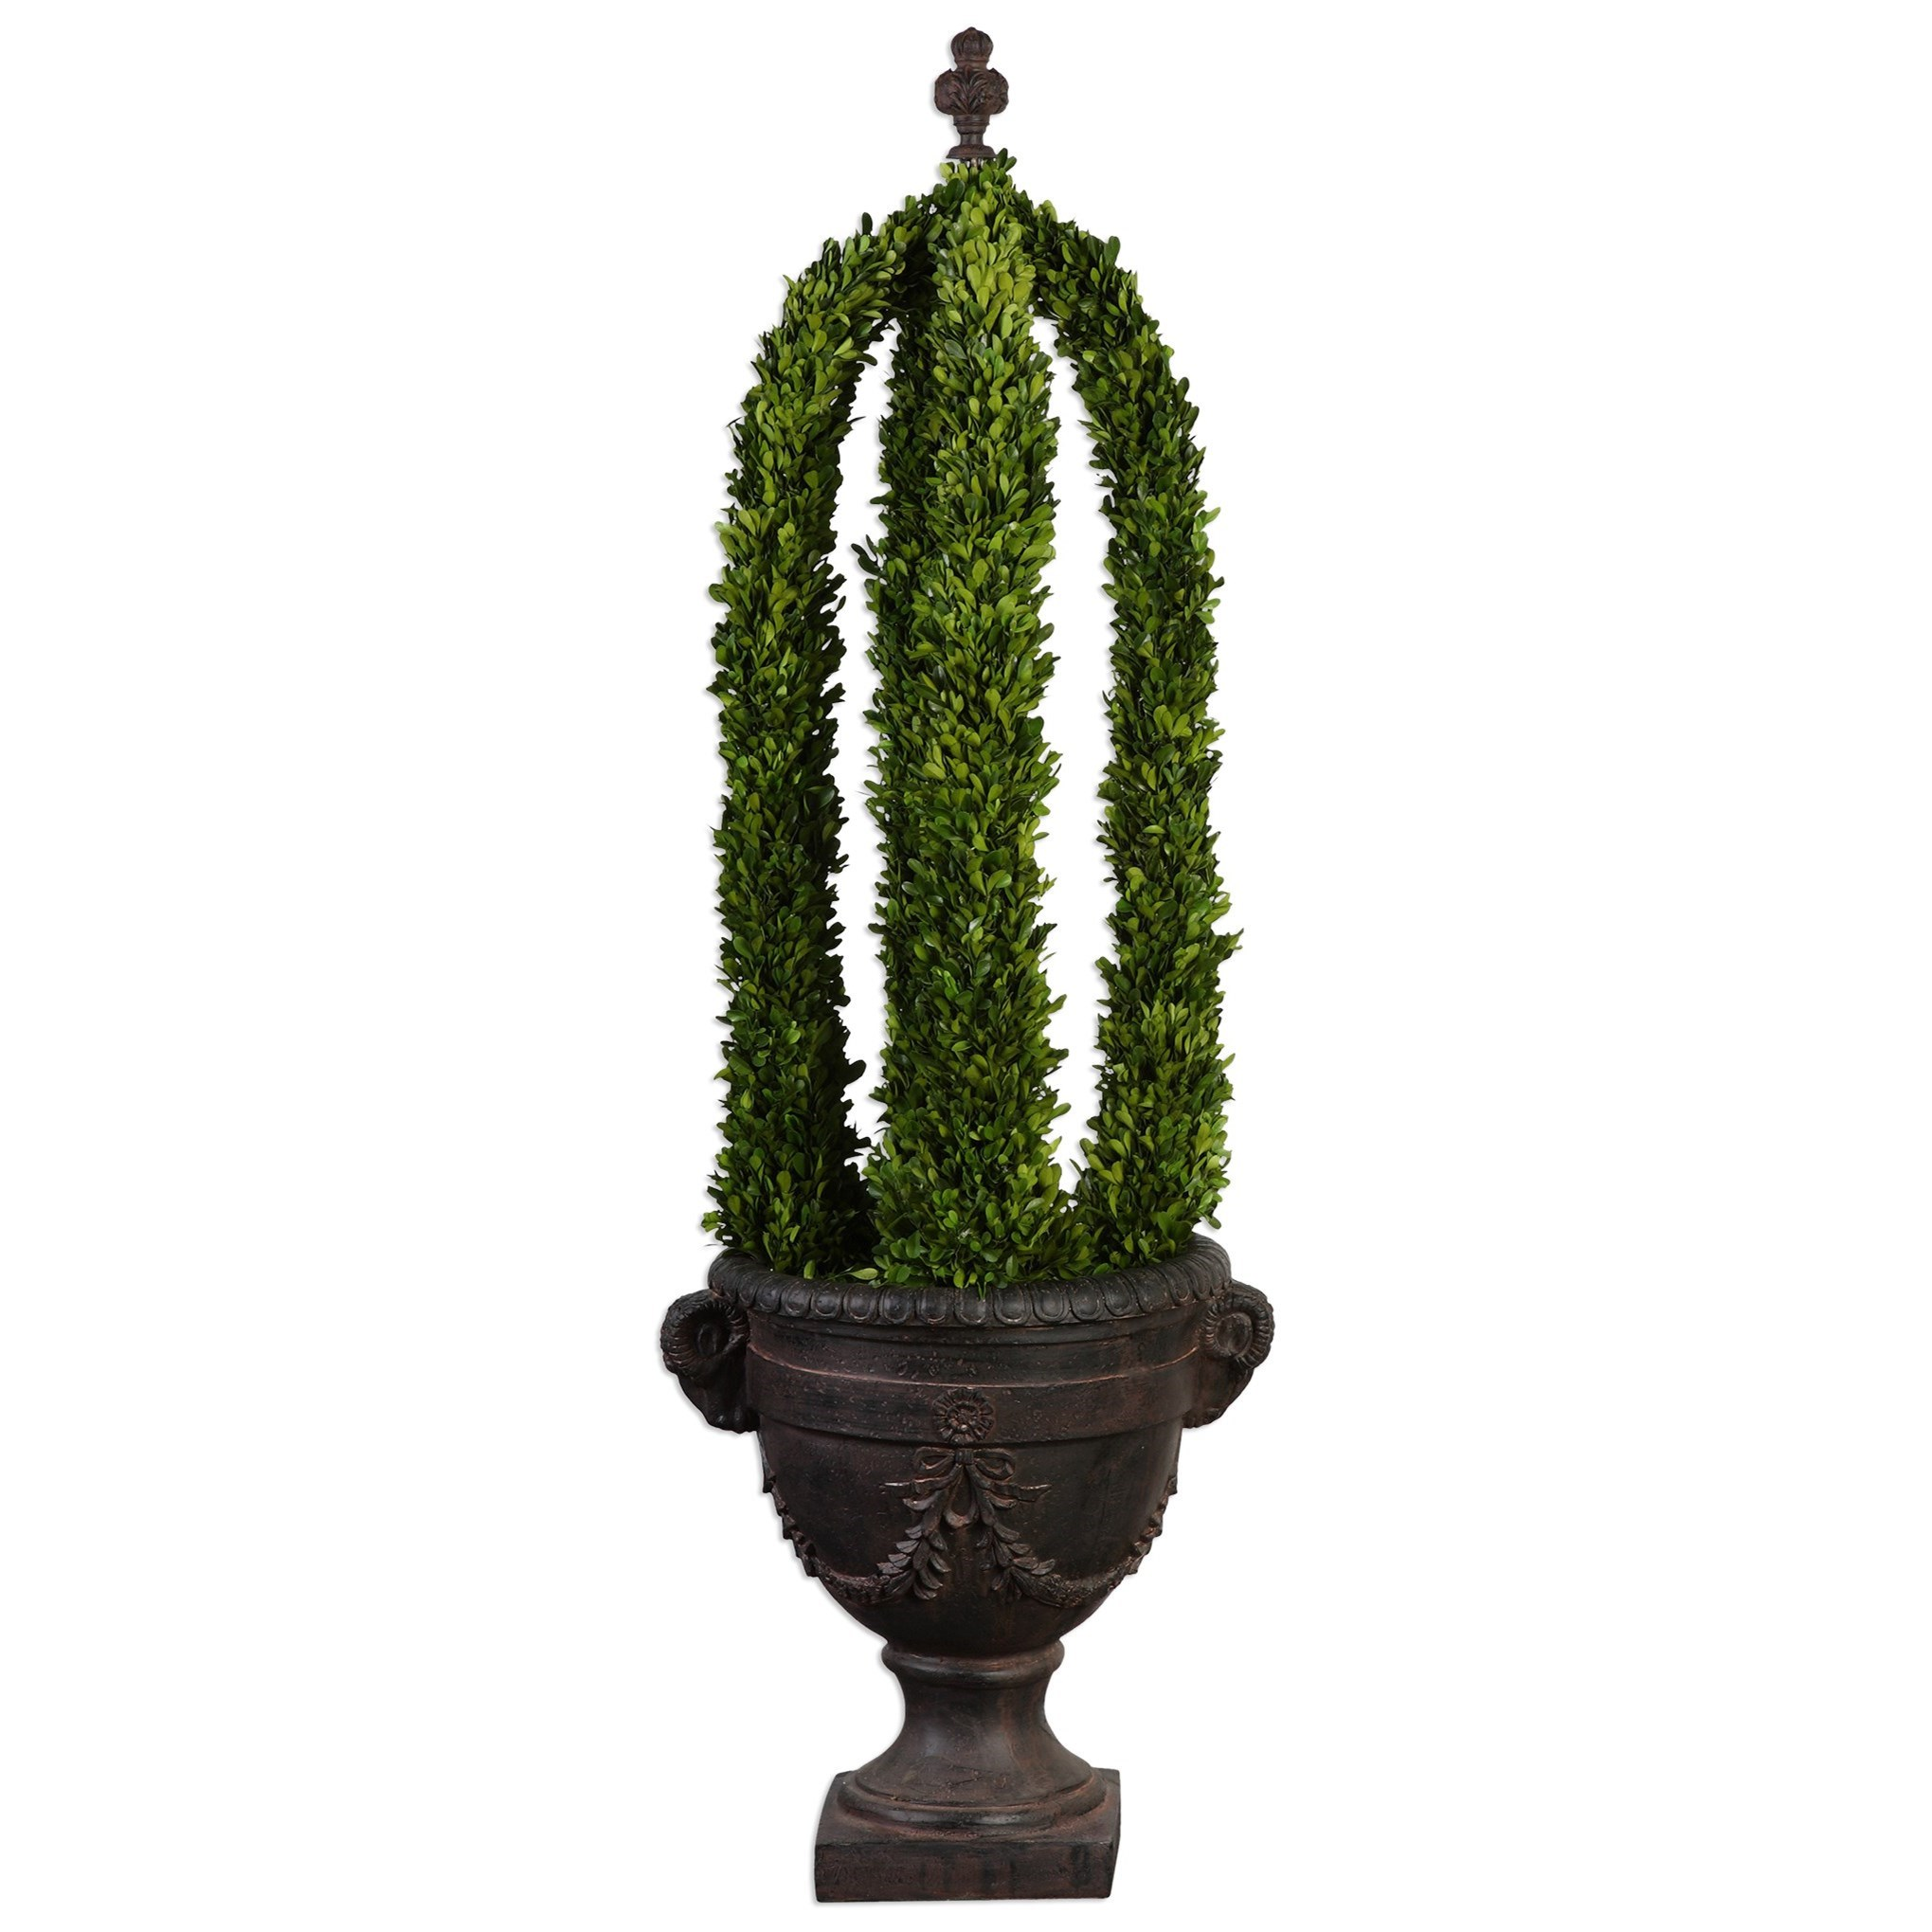 Uttermost Accessories Preserved Boxwood Obelisk Tower - Item Number: 60124